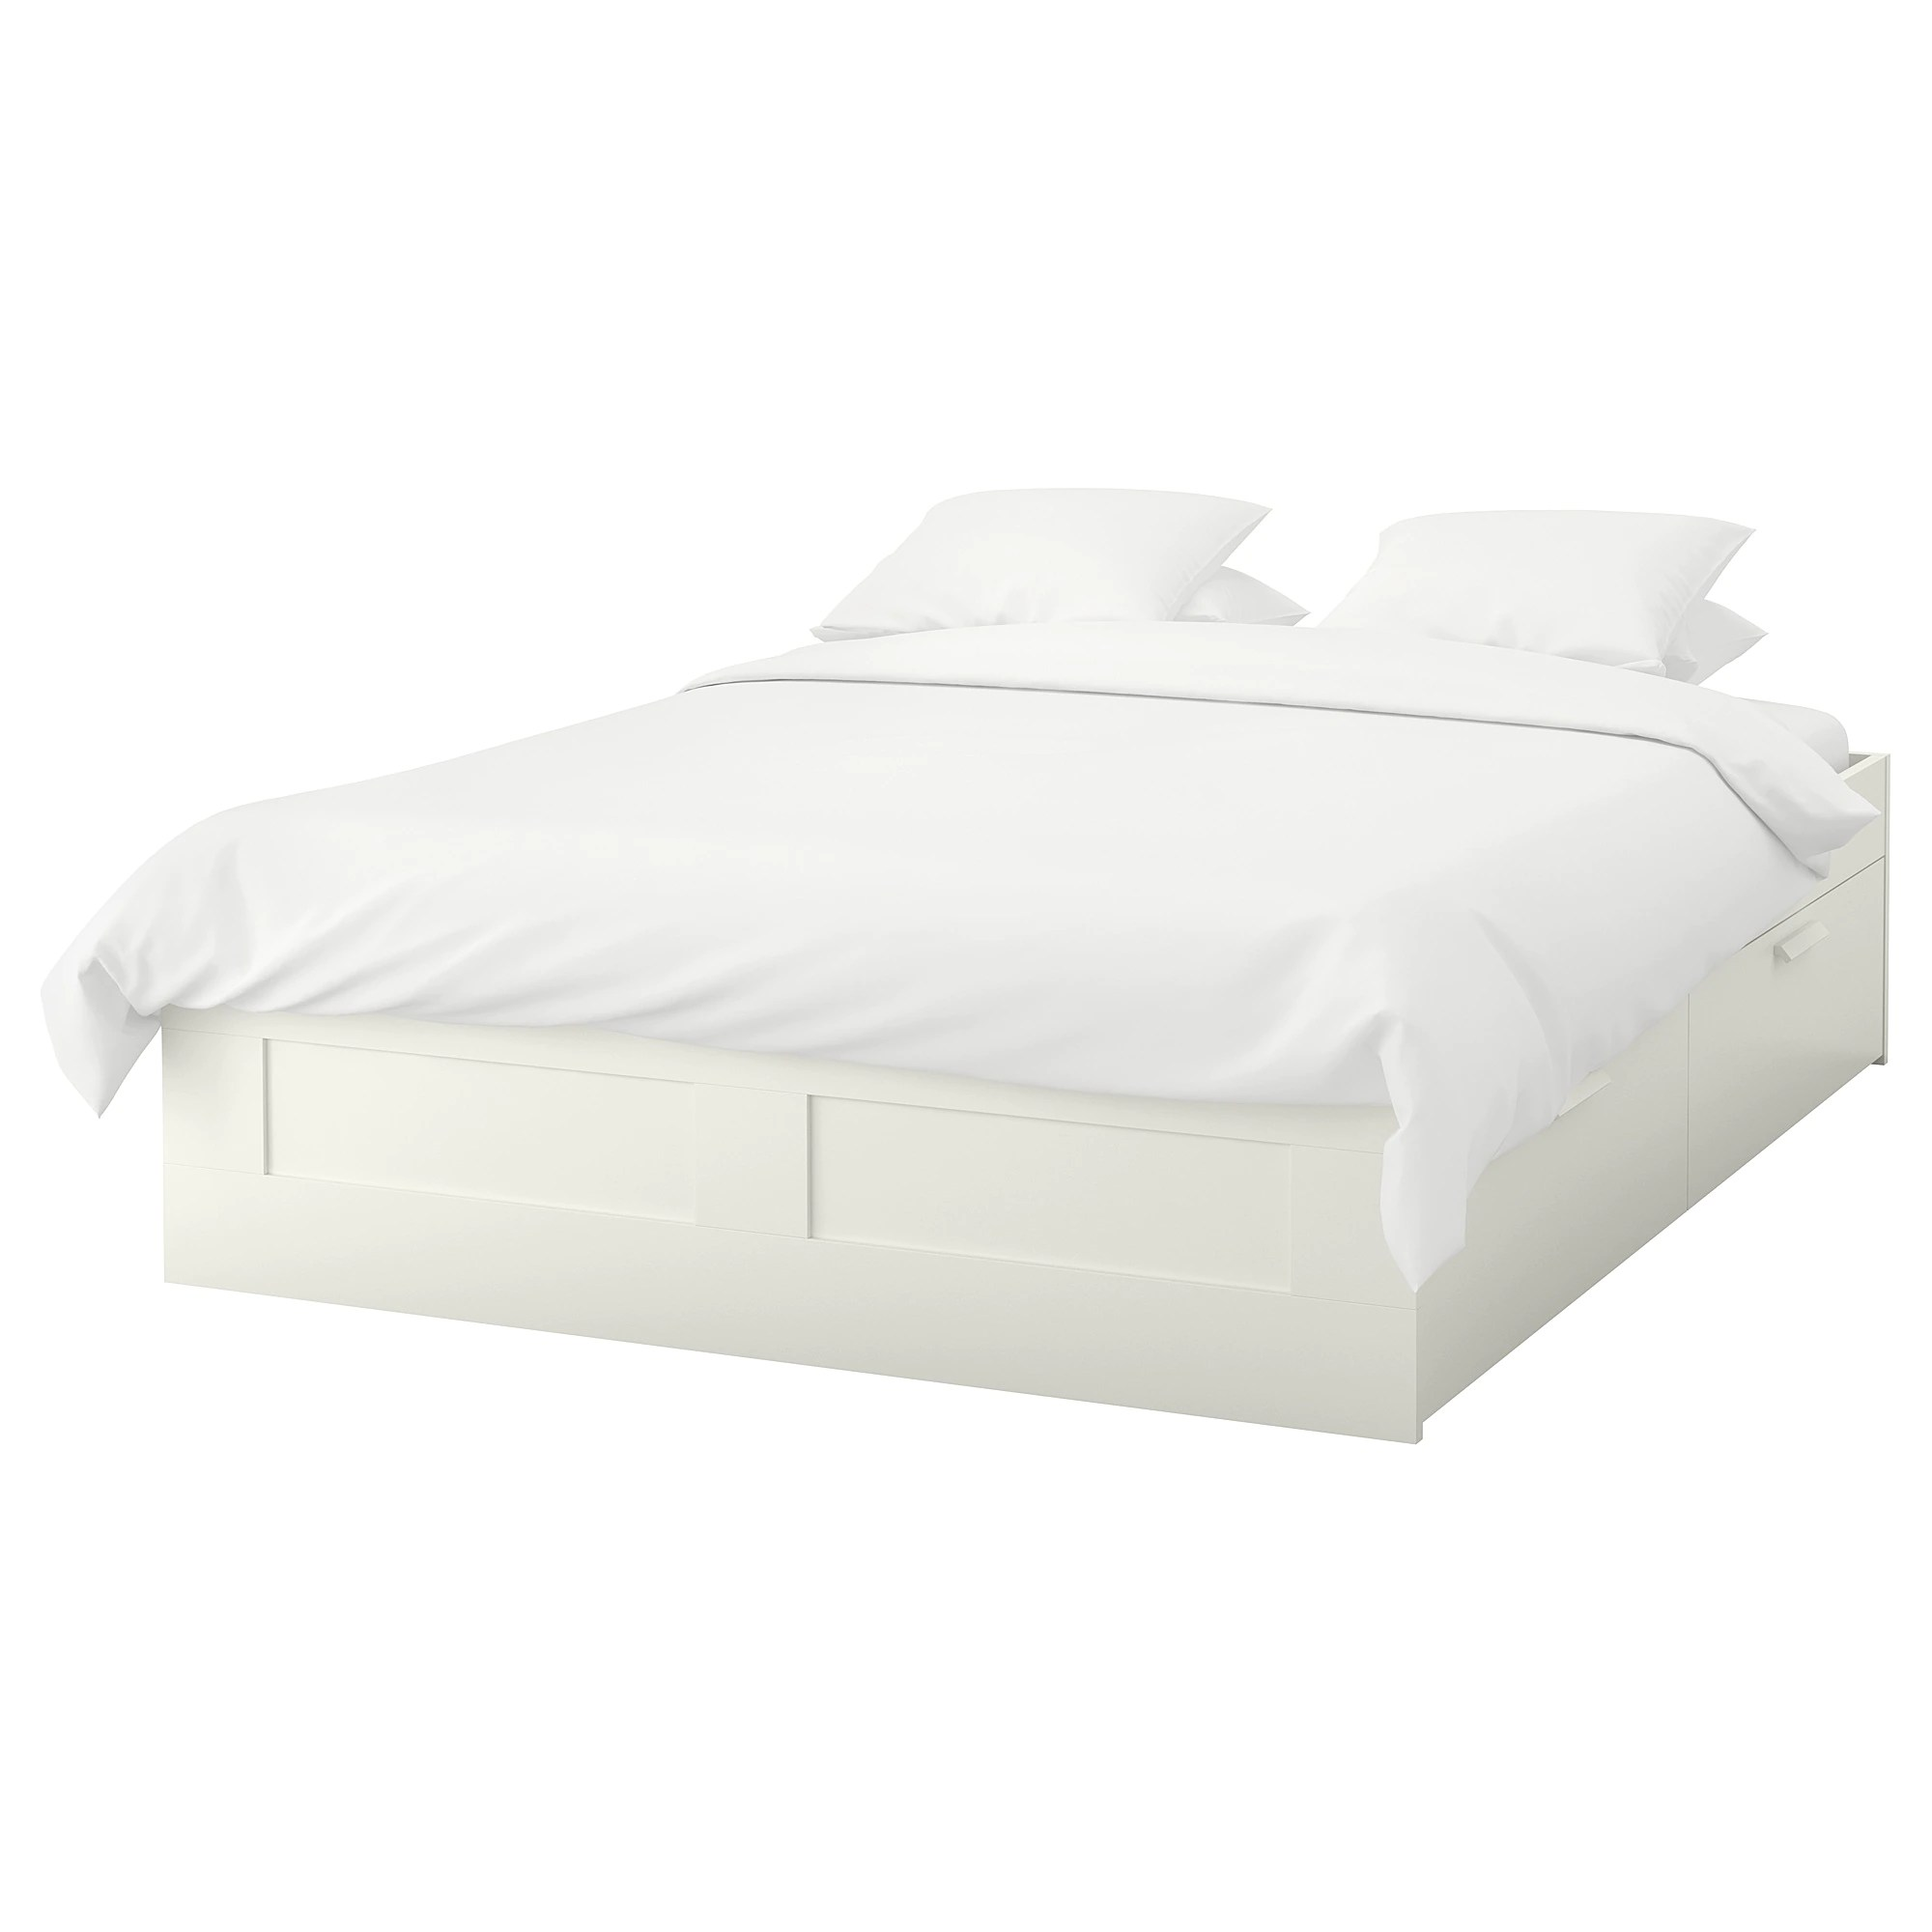 Bedroom Mattress Brimnes Bed Frame With Storage White